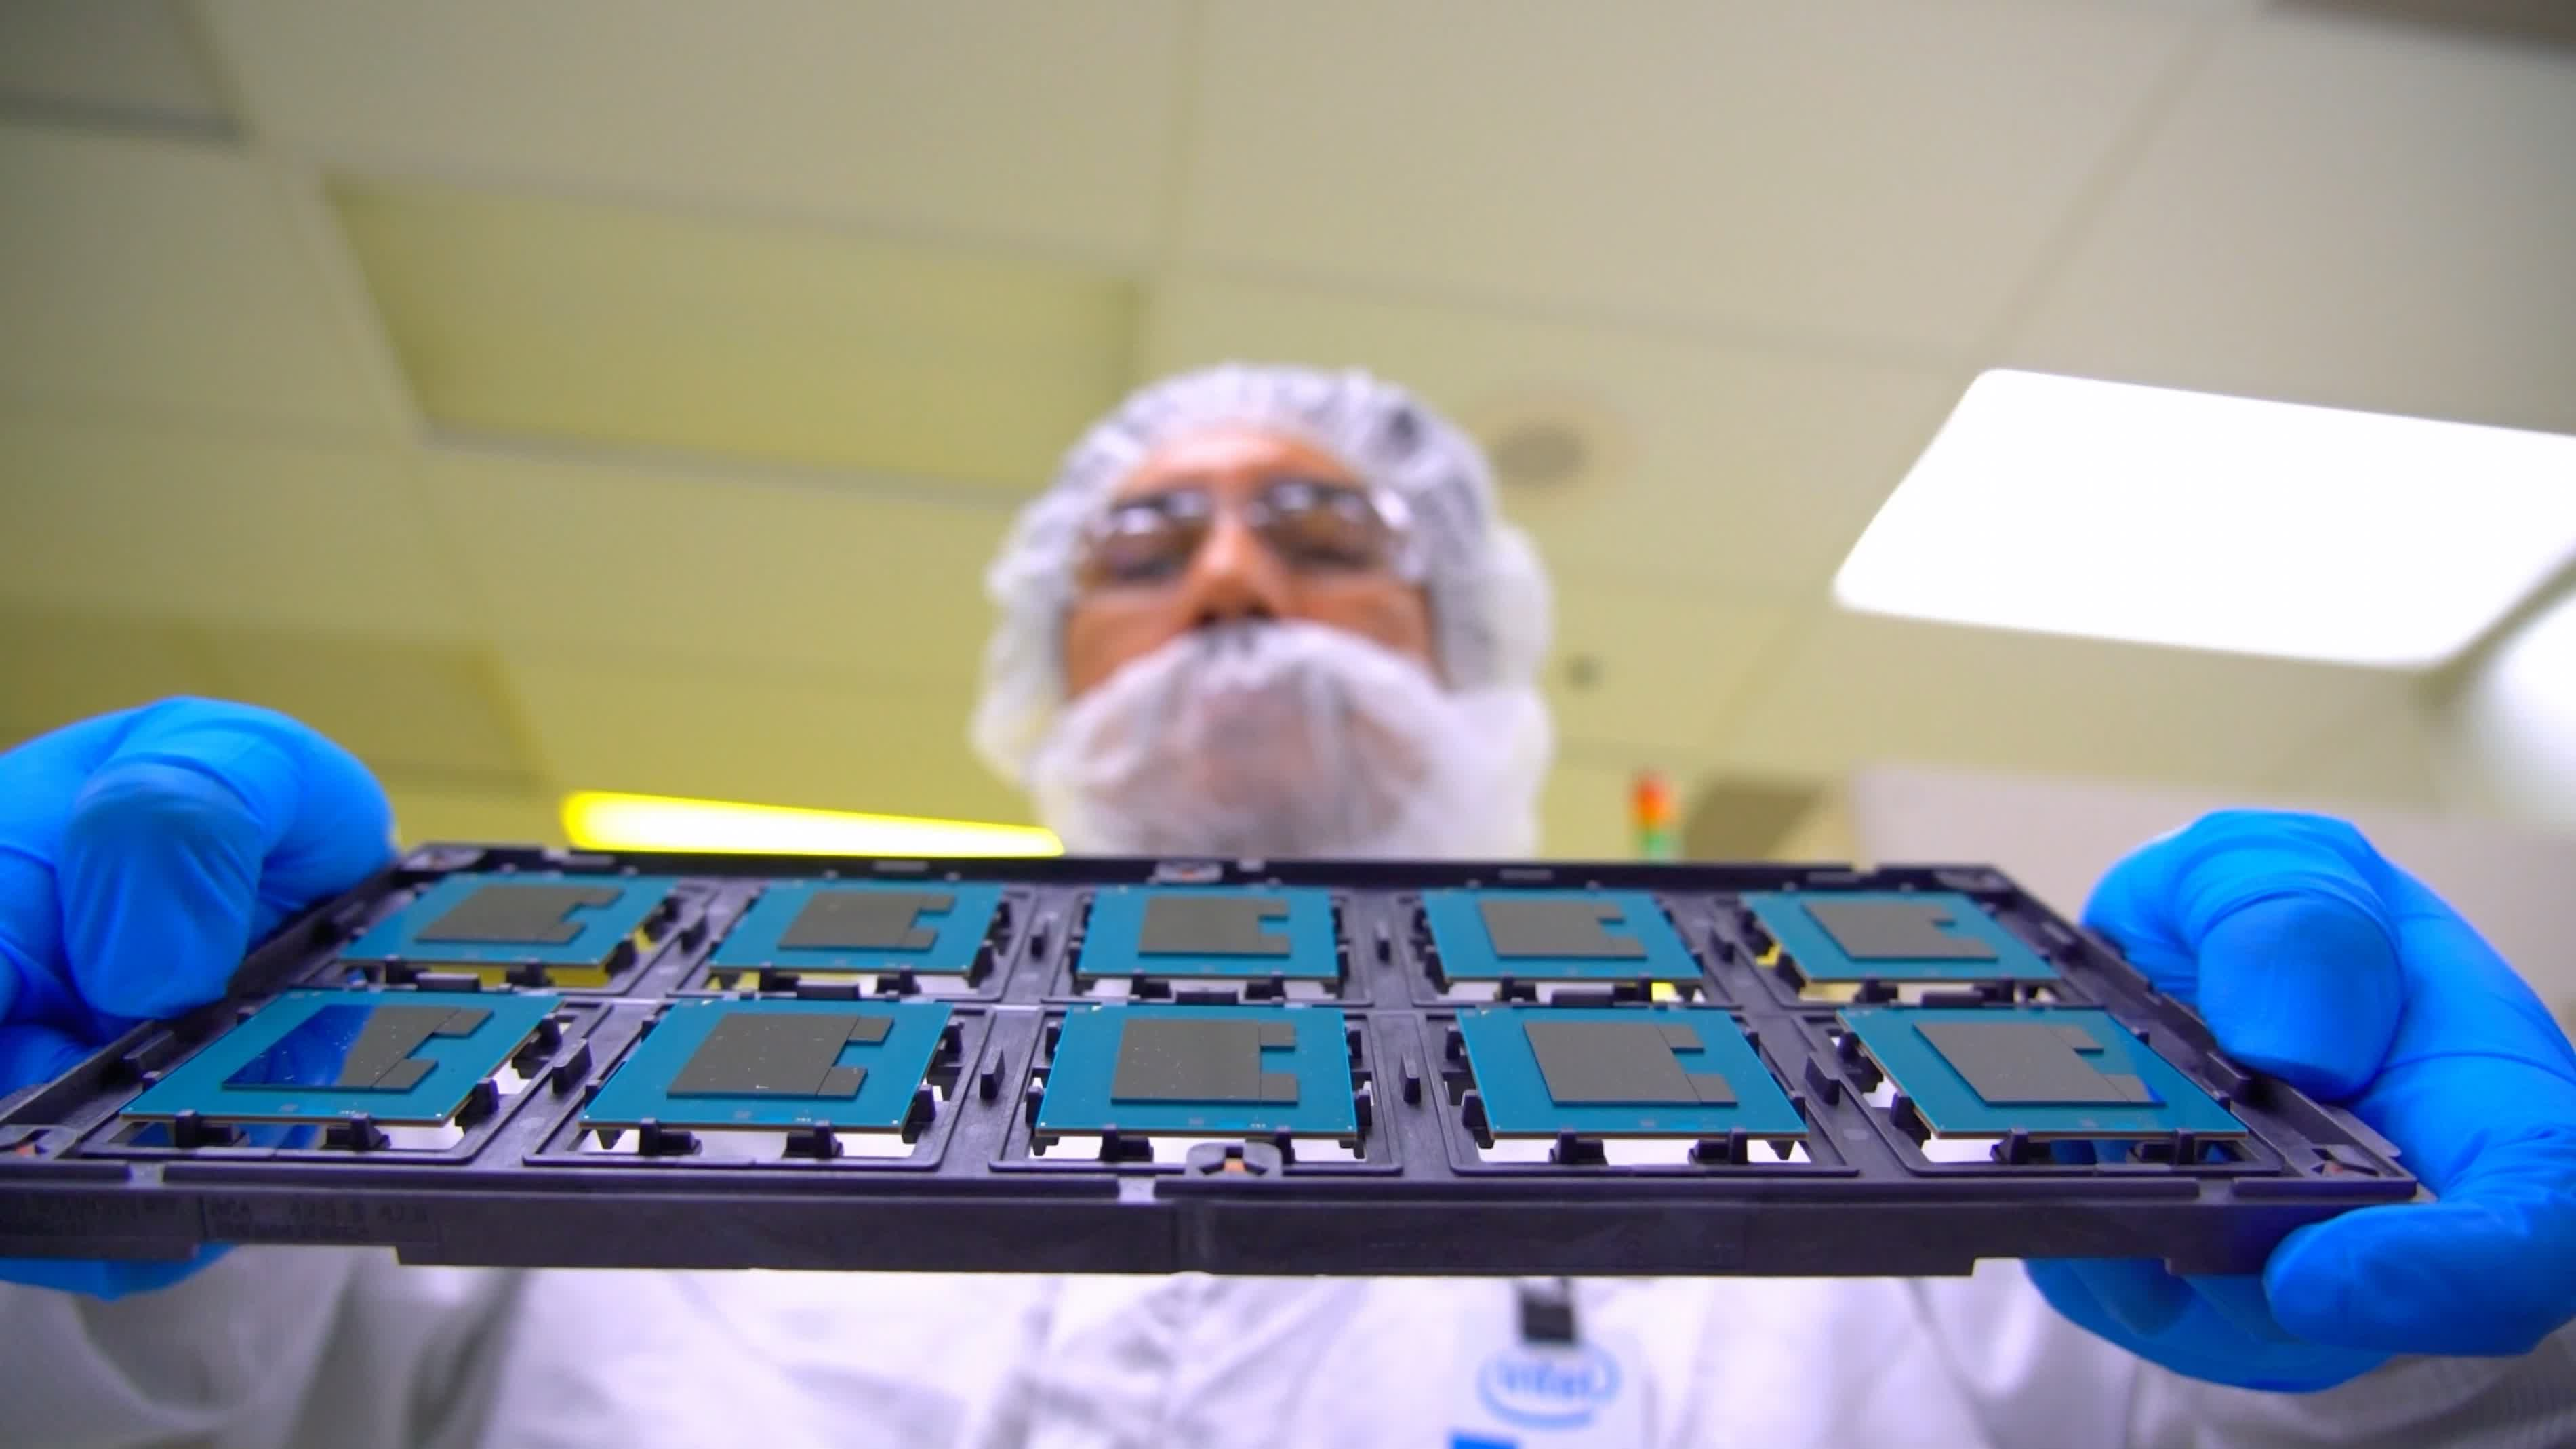 Intel will invest $94.7 billion to build chip fabs in Europe